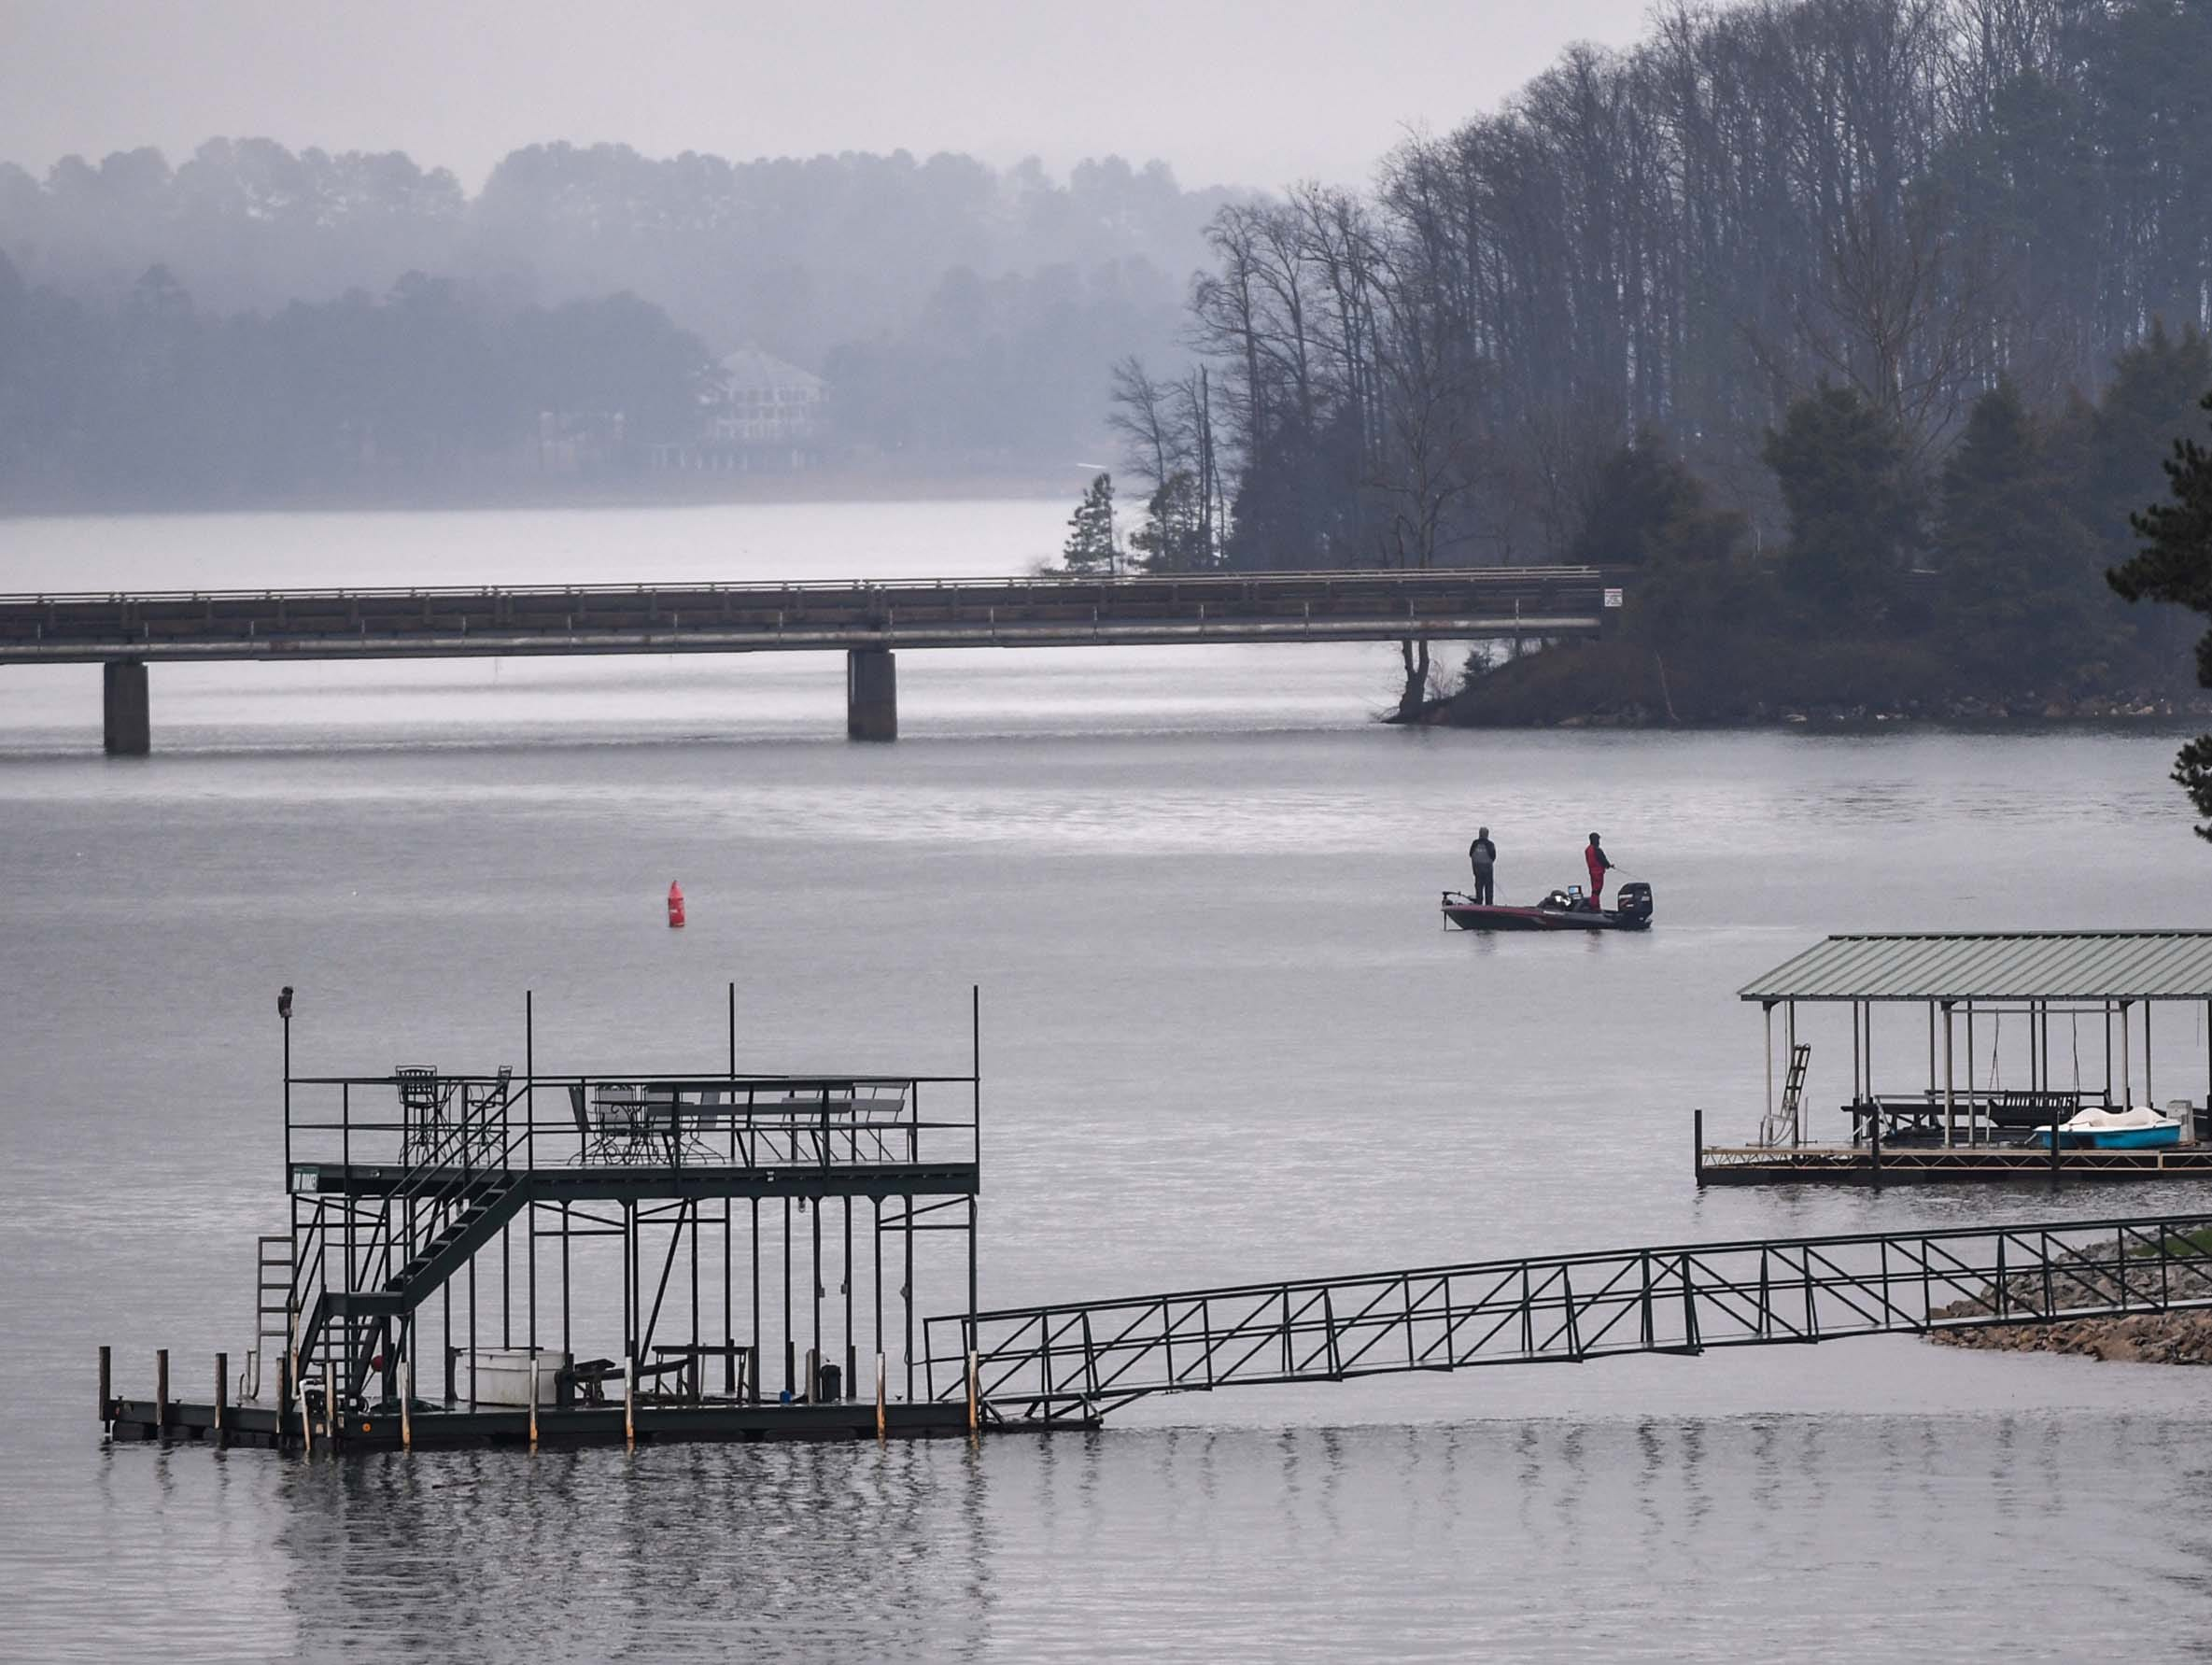 A boat with high school students practices fishing before the Mossy Oak Fishing Bassmaster High School Open at the Green Pond Boat Landing on Hartwell Lake in Anderson Friday. The official event, with 87 schools from 15 states, starts at the boat landing at 6:45 a.m. Saturday morning.